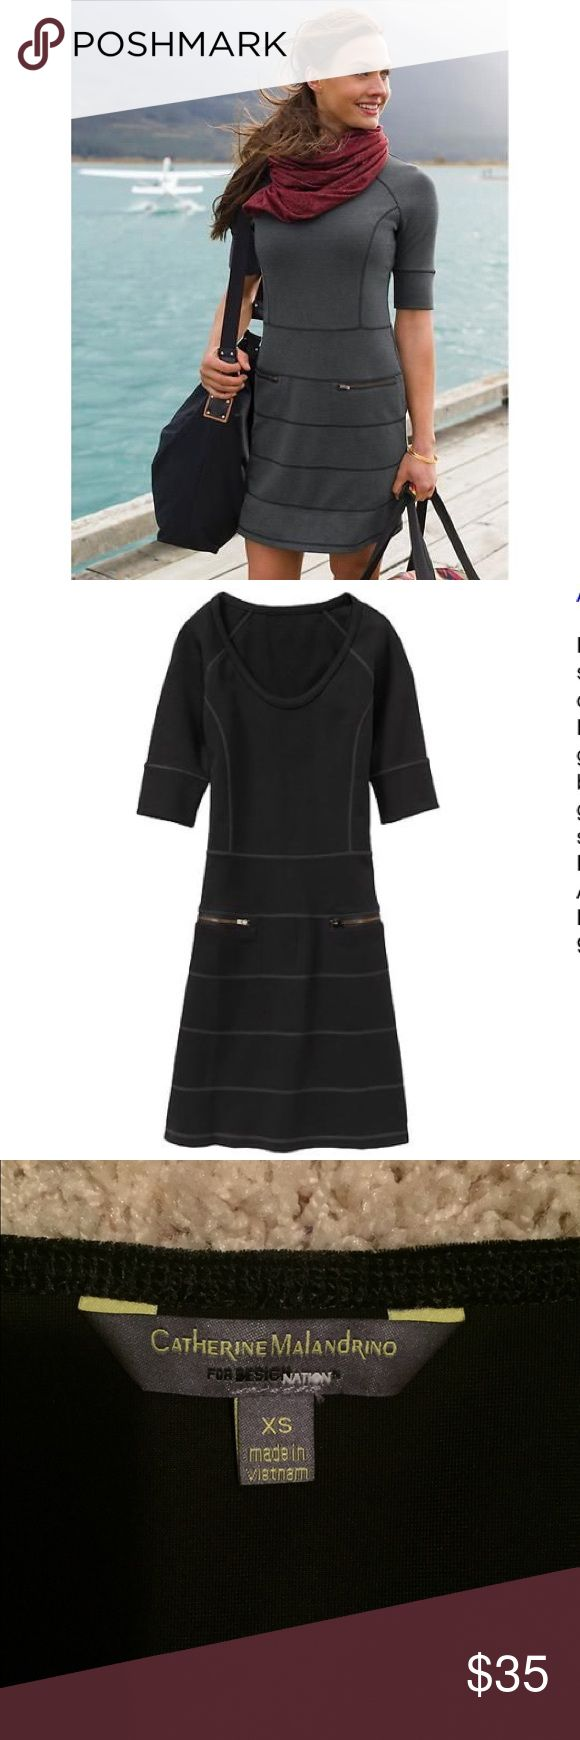 ATHLETA Black Ponte Knit Half Sleeve STRATA Dress Beautiful dress with style lines. This dress is made with pointe fabric that's soft and thick and great for travel. Still in excellent condition. Athleta Dresses Mini